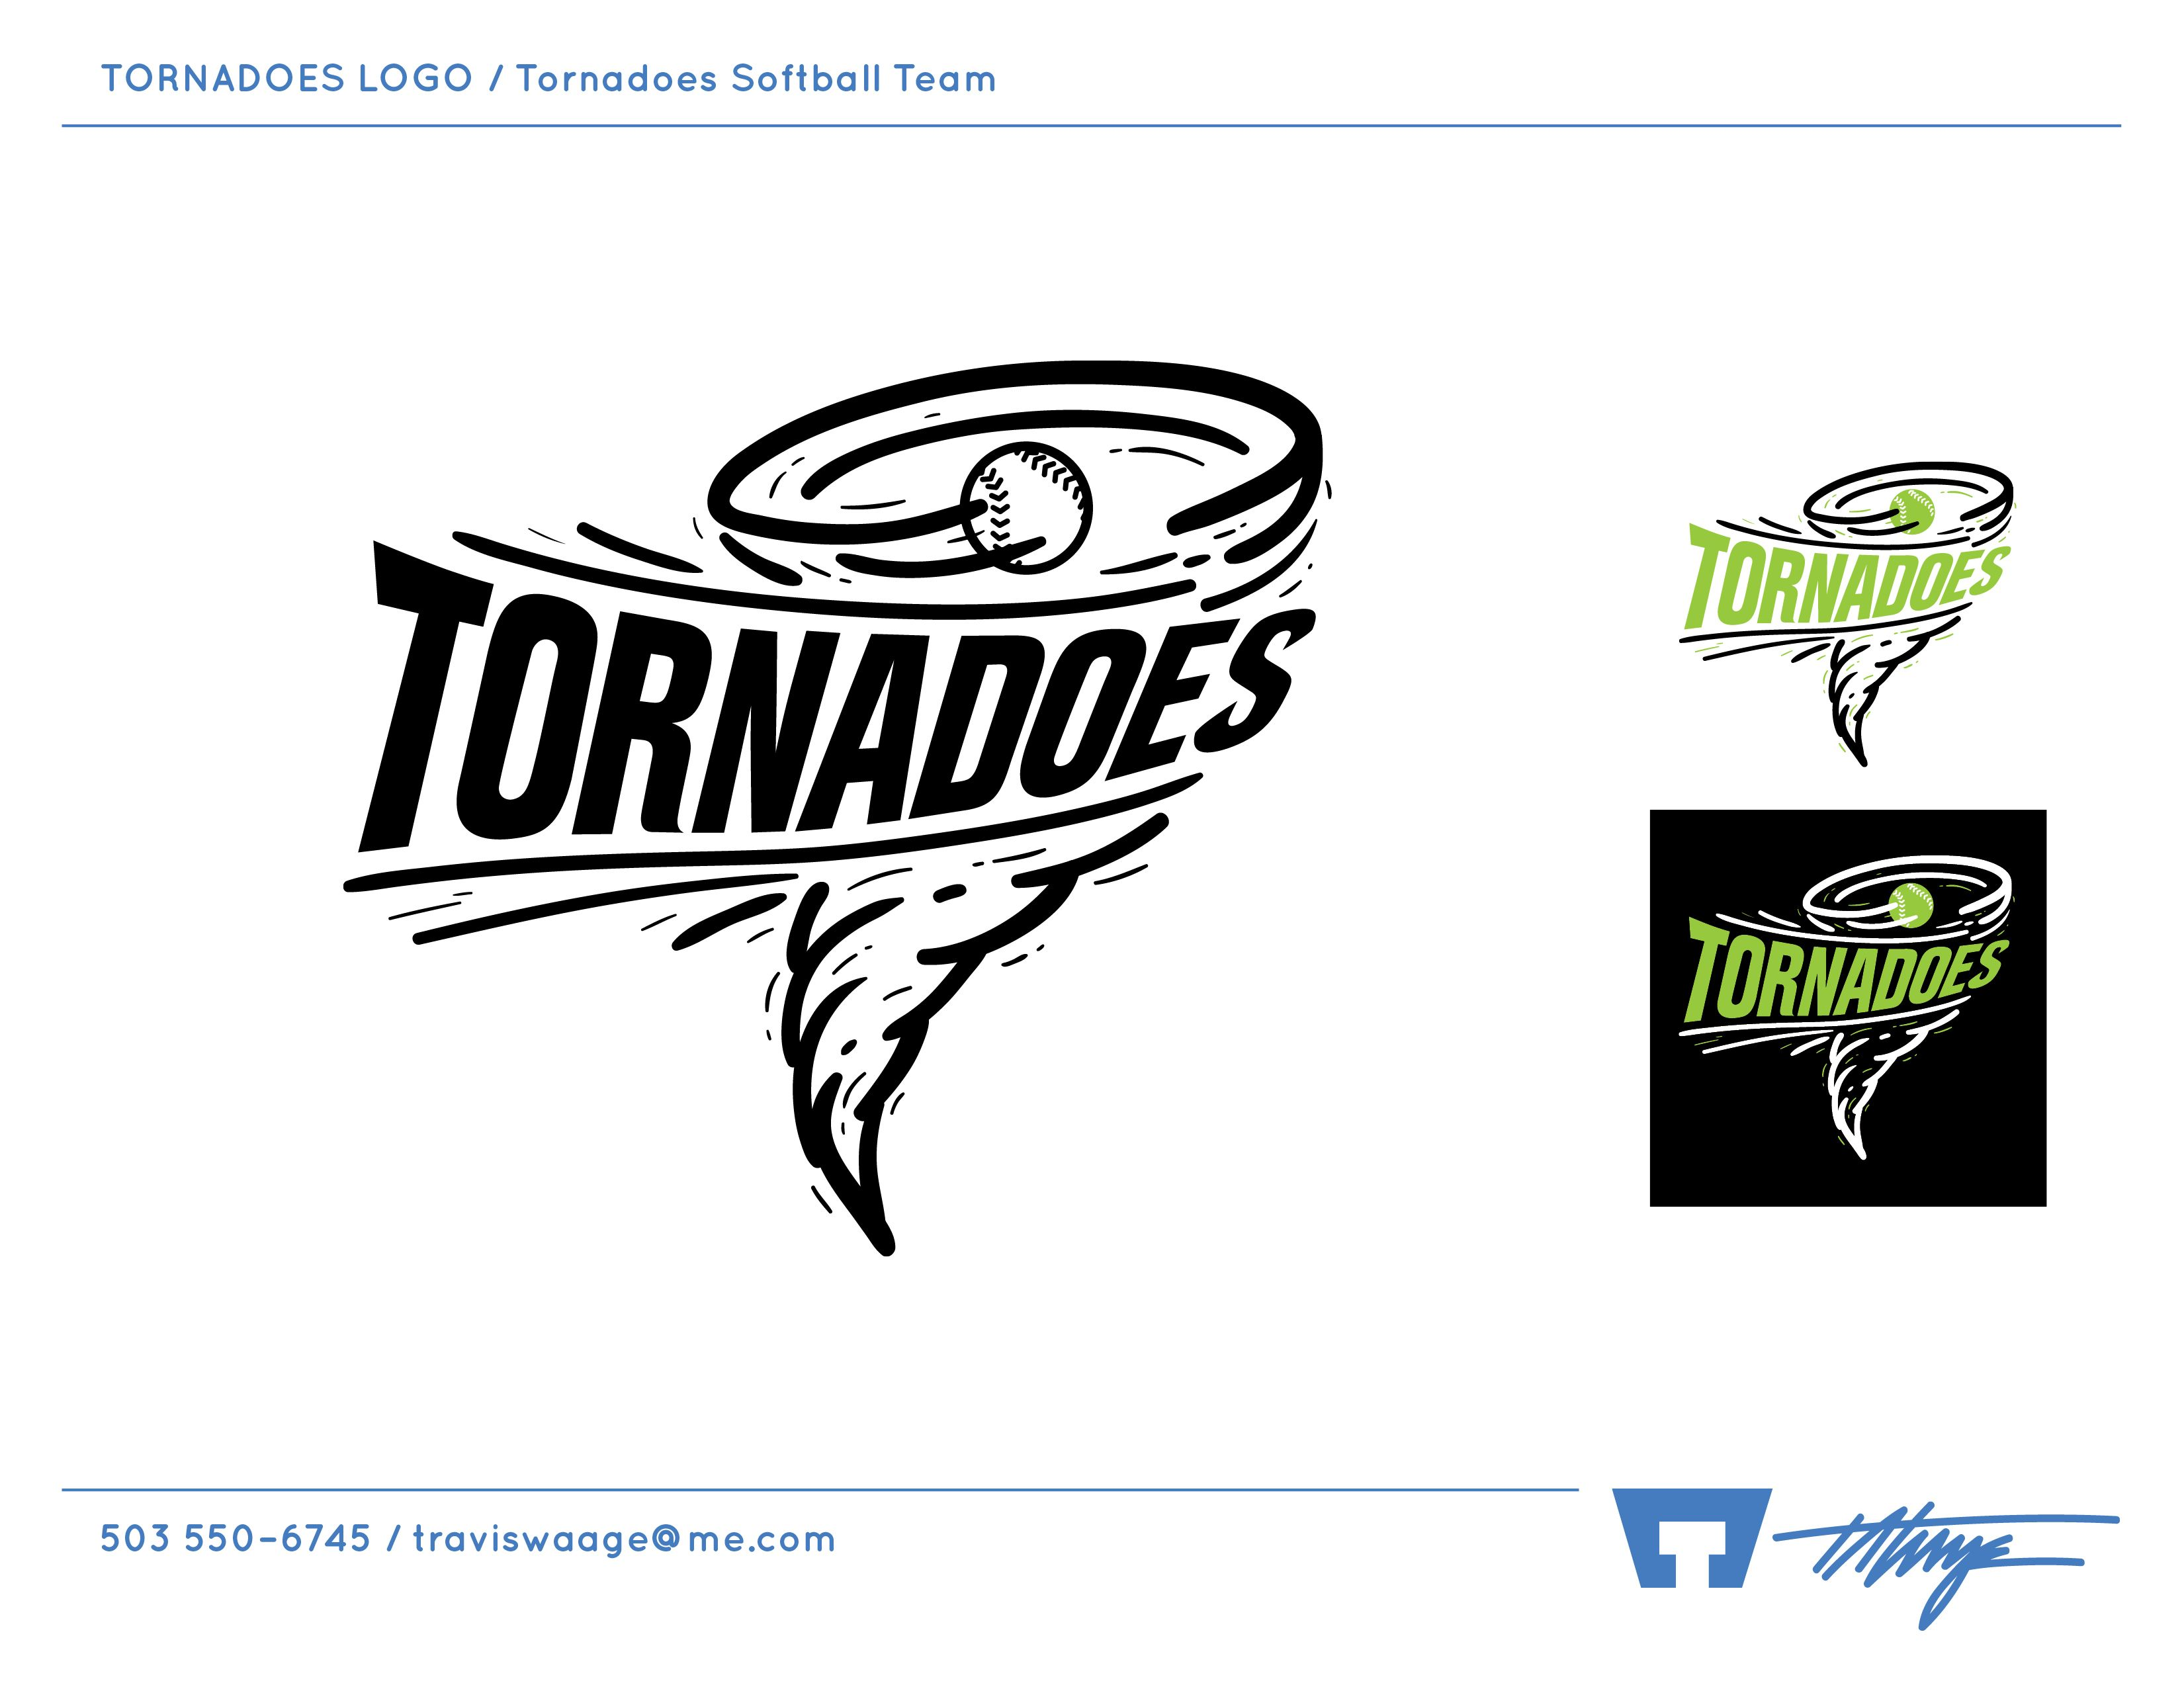 Tornadoes Logo Tornadoes Softball Team Softball Team Softball Sports Logo